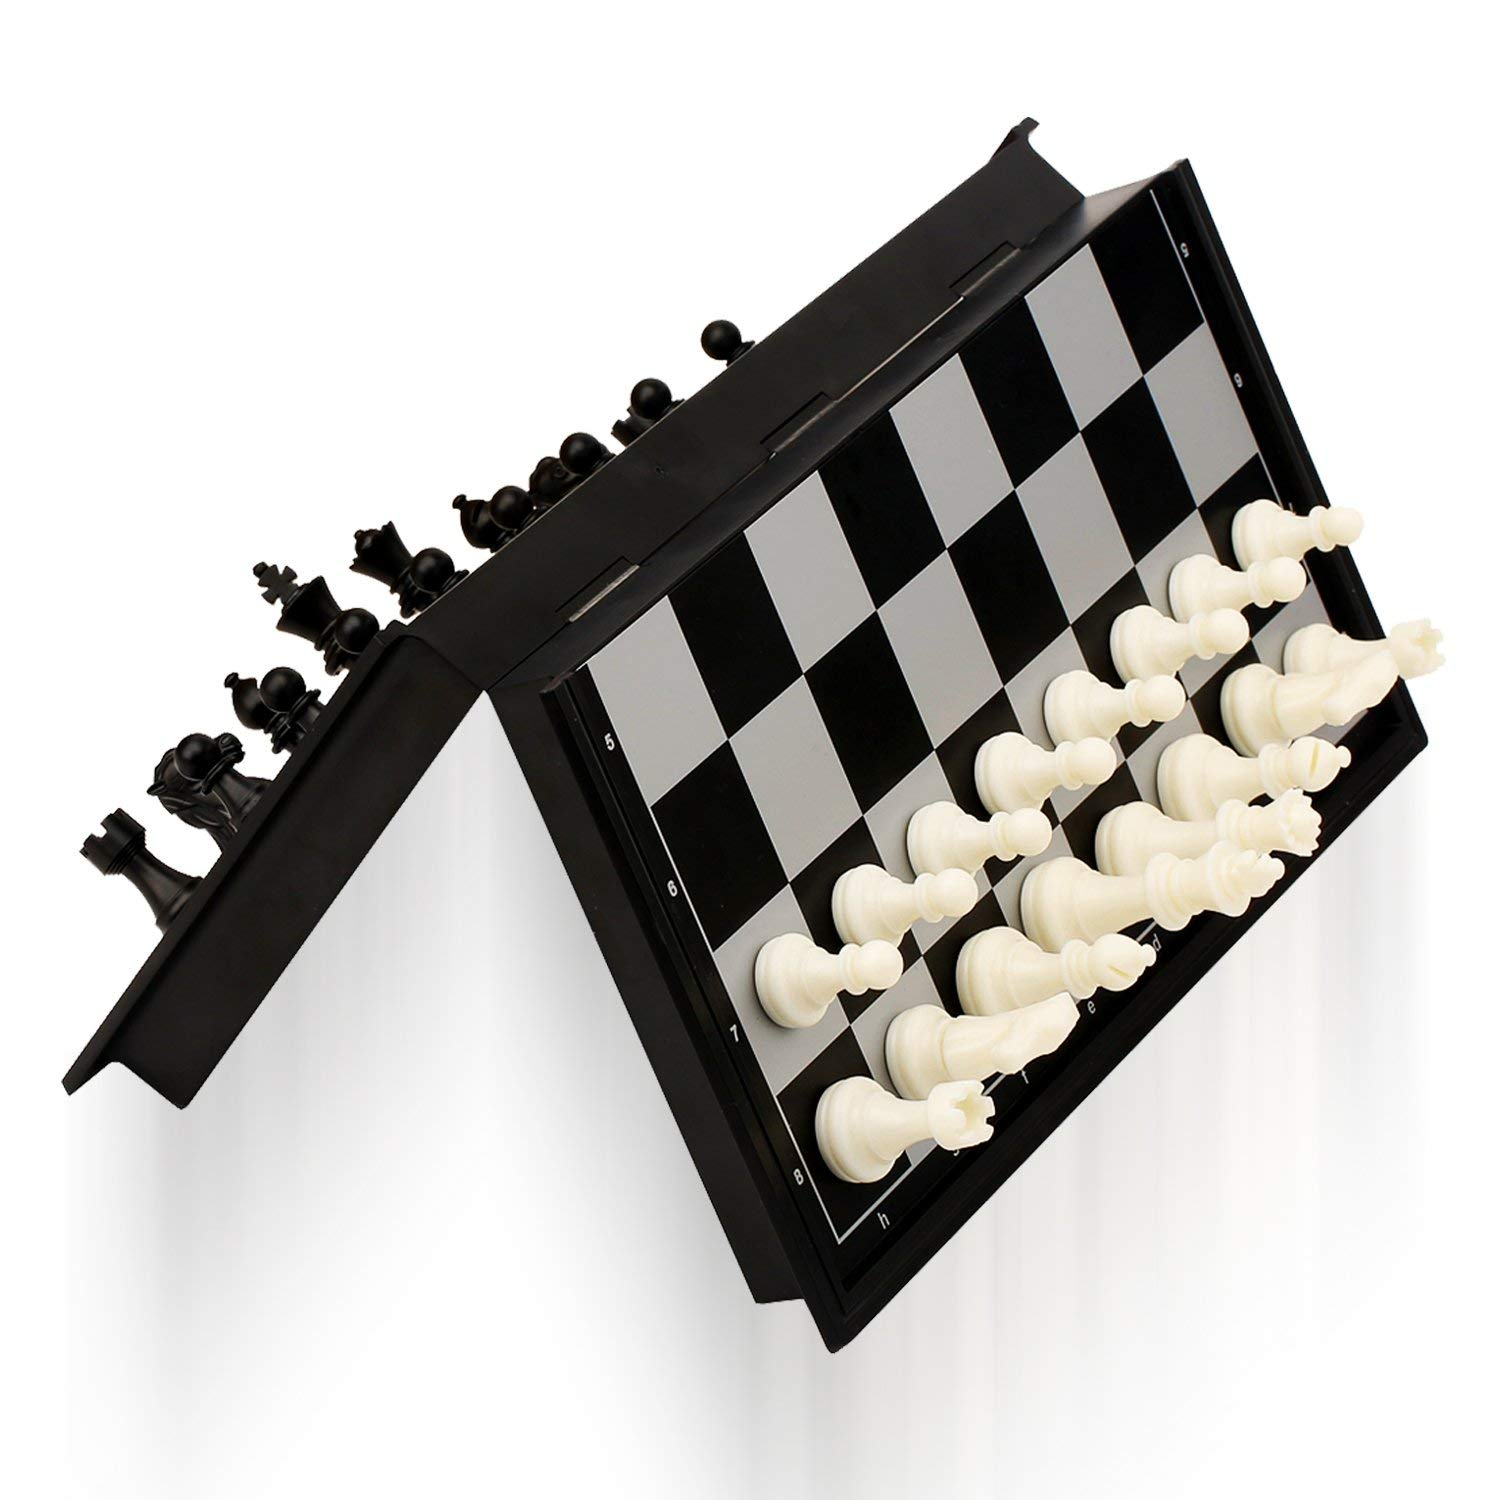 Magnetic & Folding Trave 3-in-1 Chess Set , Chess & Checkers & Backgammon , Best Chess Games Gift for Kids Beginners and Adults 9.84'' x 9.76'' by MALGOGY